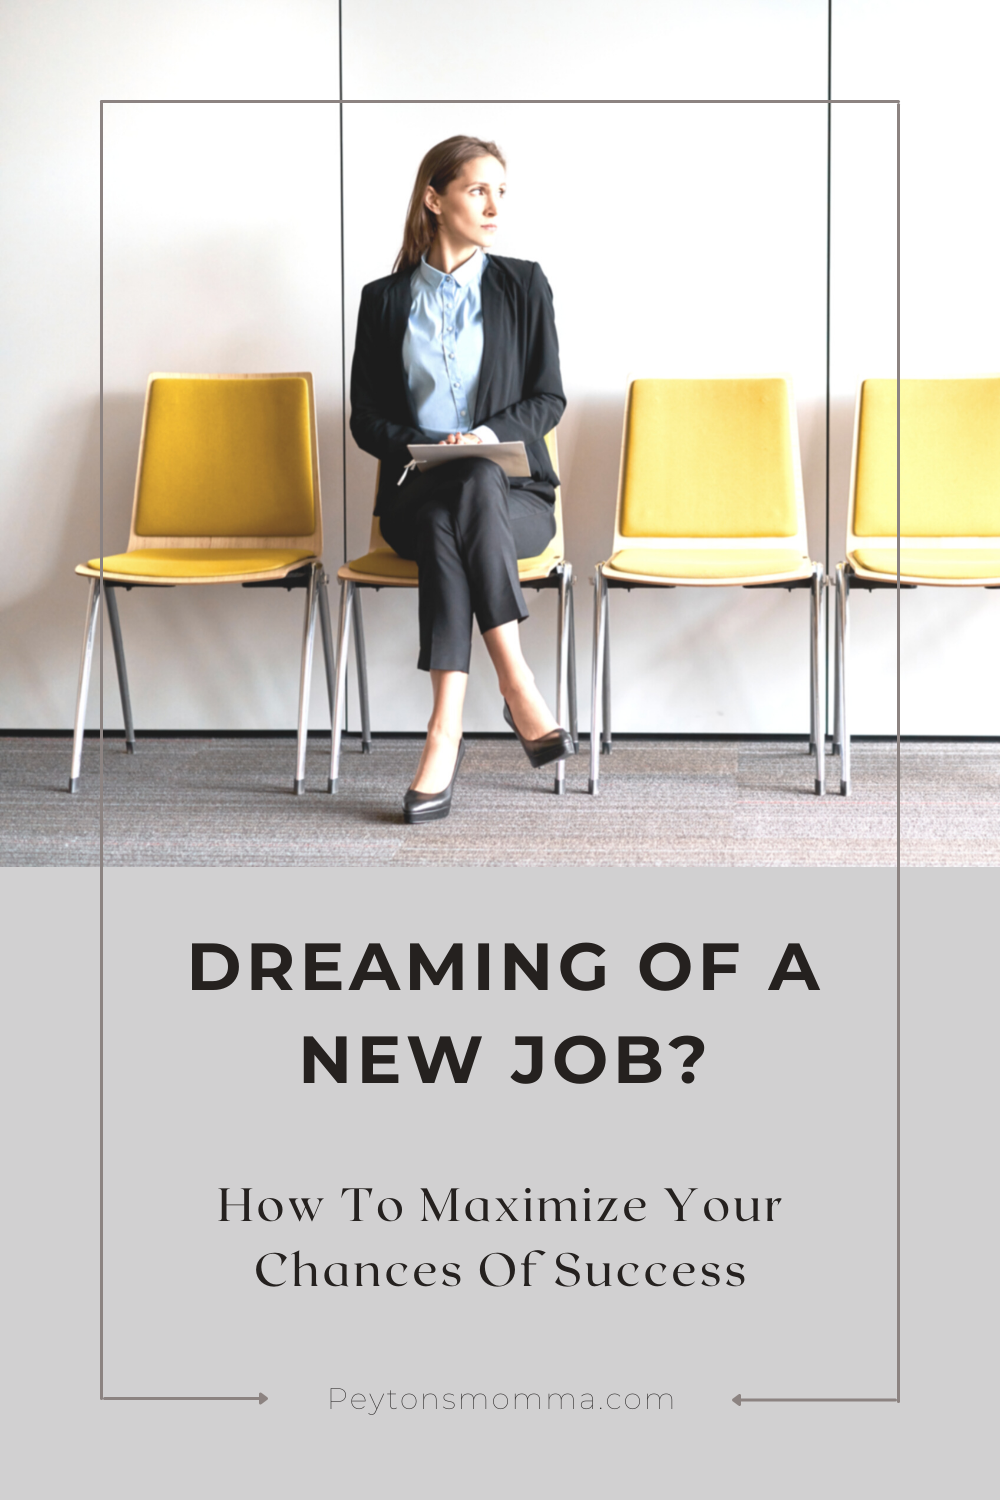 Dreaming Of A New Job? How To Maximize Your Chances Of Success - Peyton's Momma™